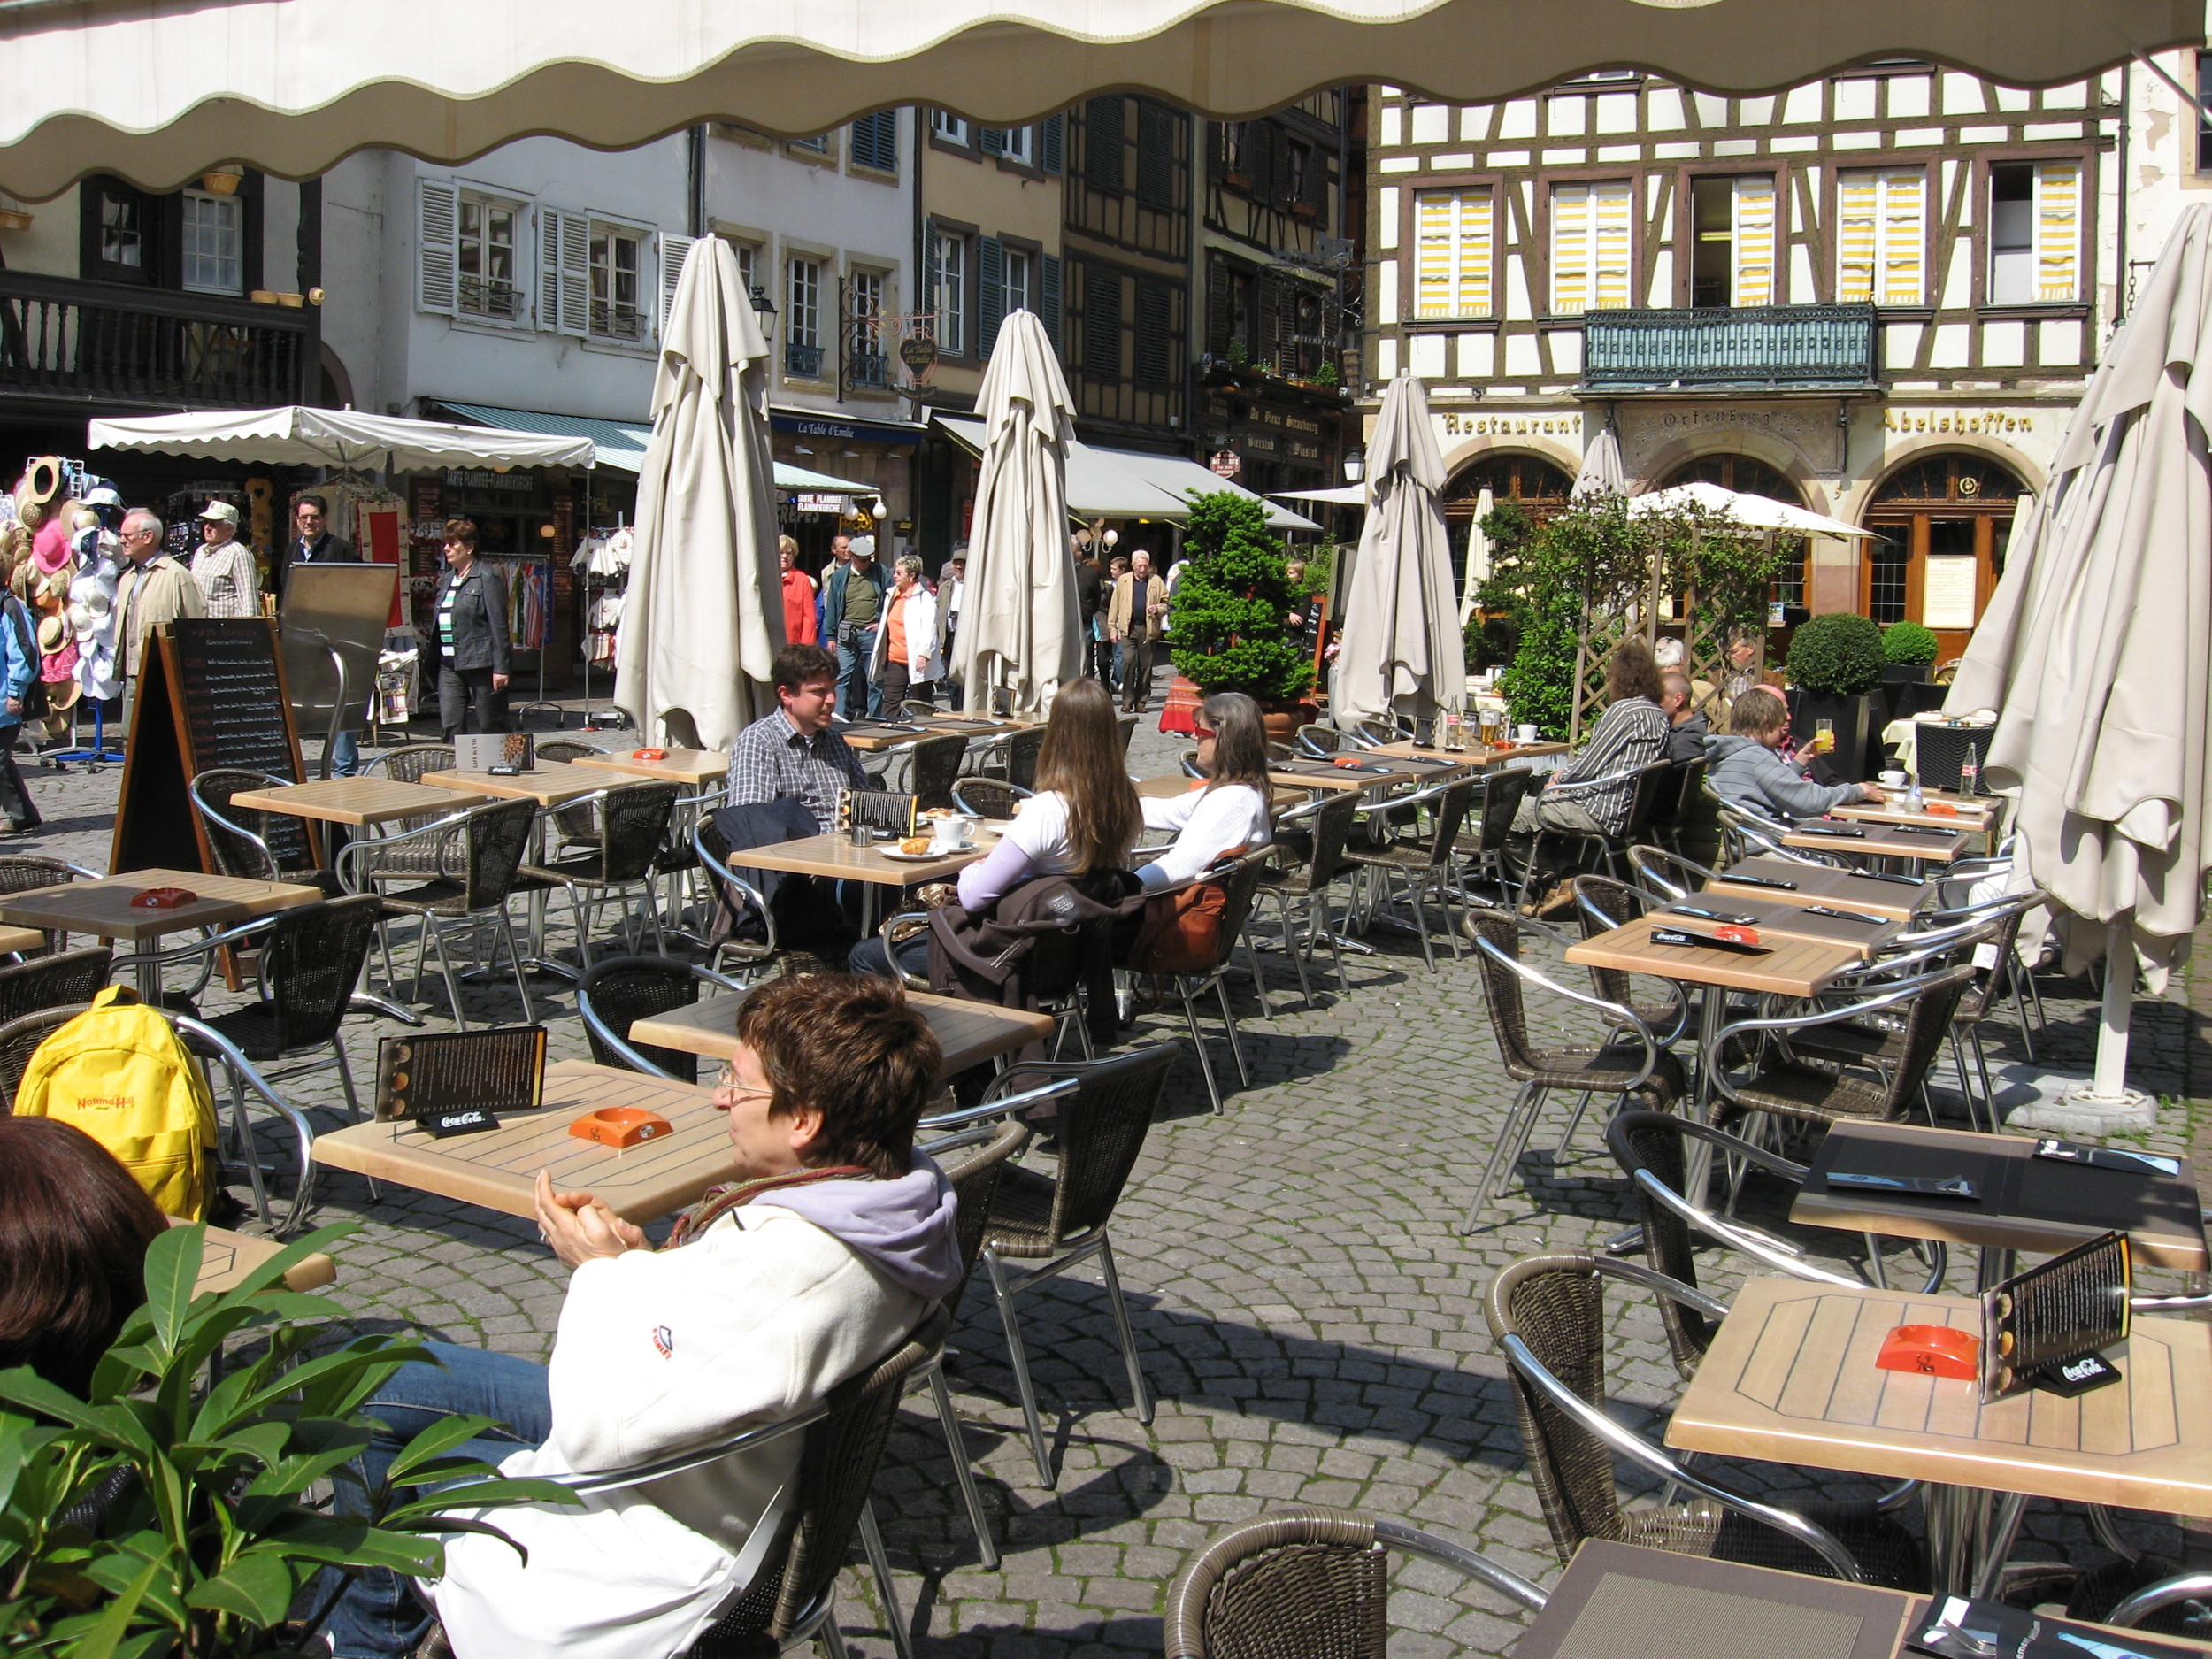 Urban living is about great public spaces, like this one in Strasbourg, France.